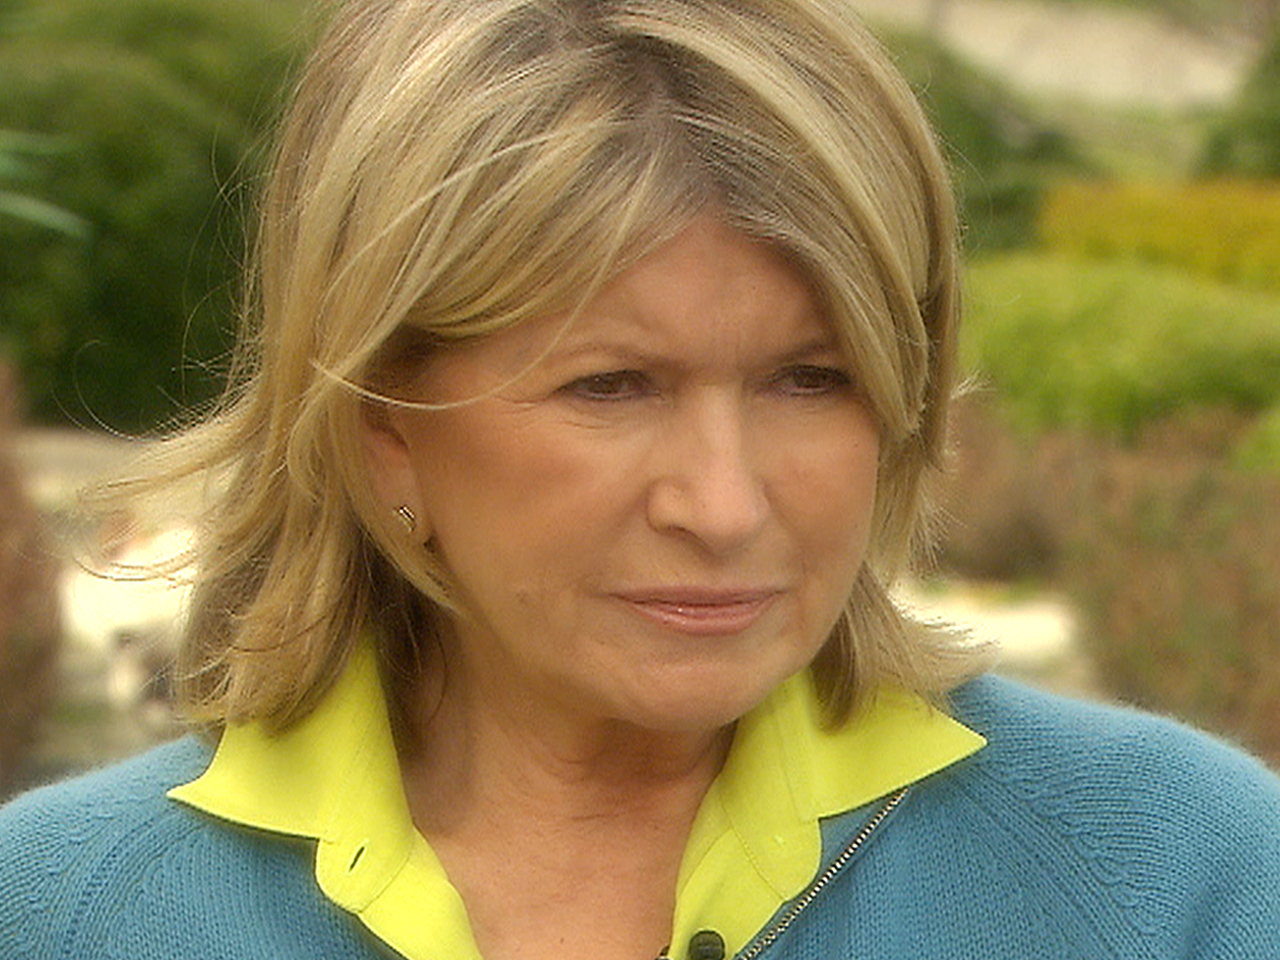 martha stewart ethical behavior Sam waksal: i was arrogant  martha stewart,  waksal had a long history of ethical lapses, reckless behavior and embellishing the truth.